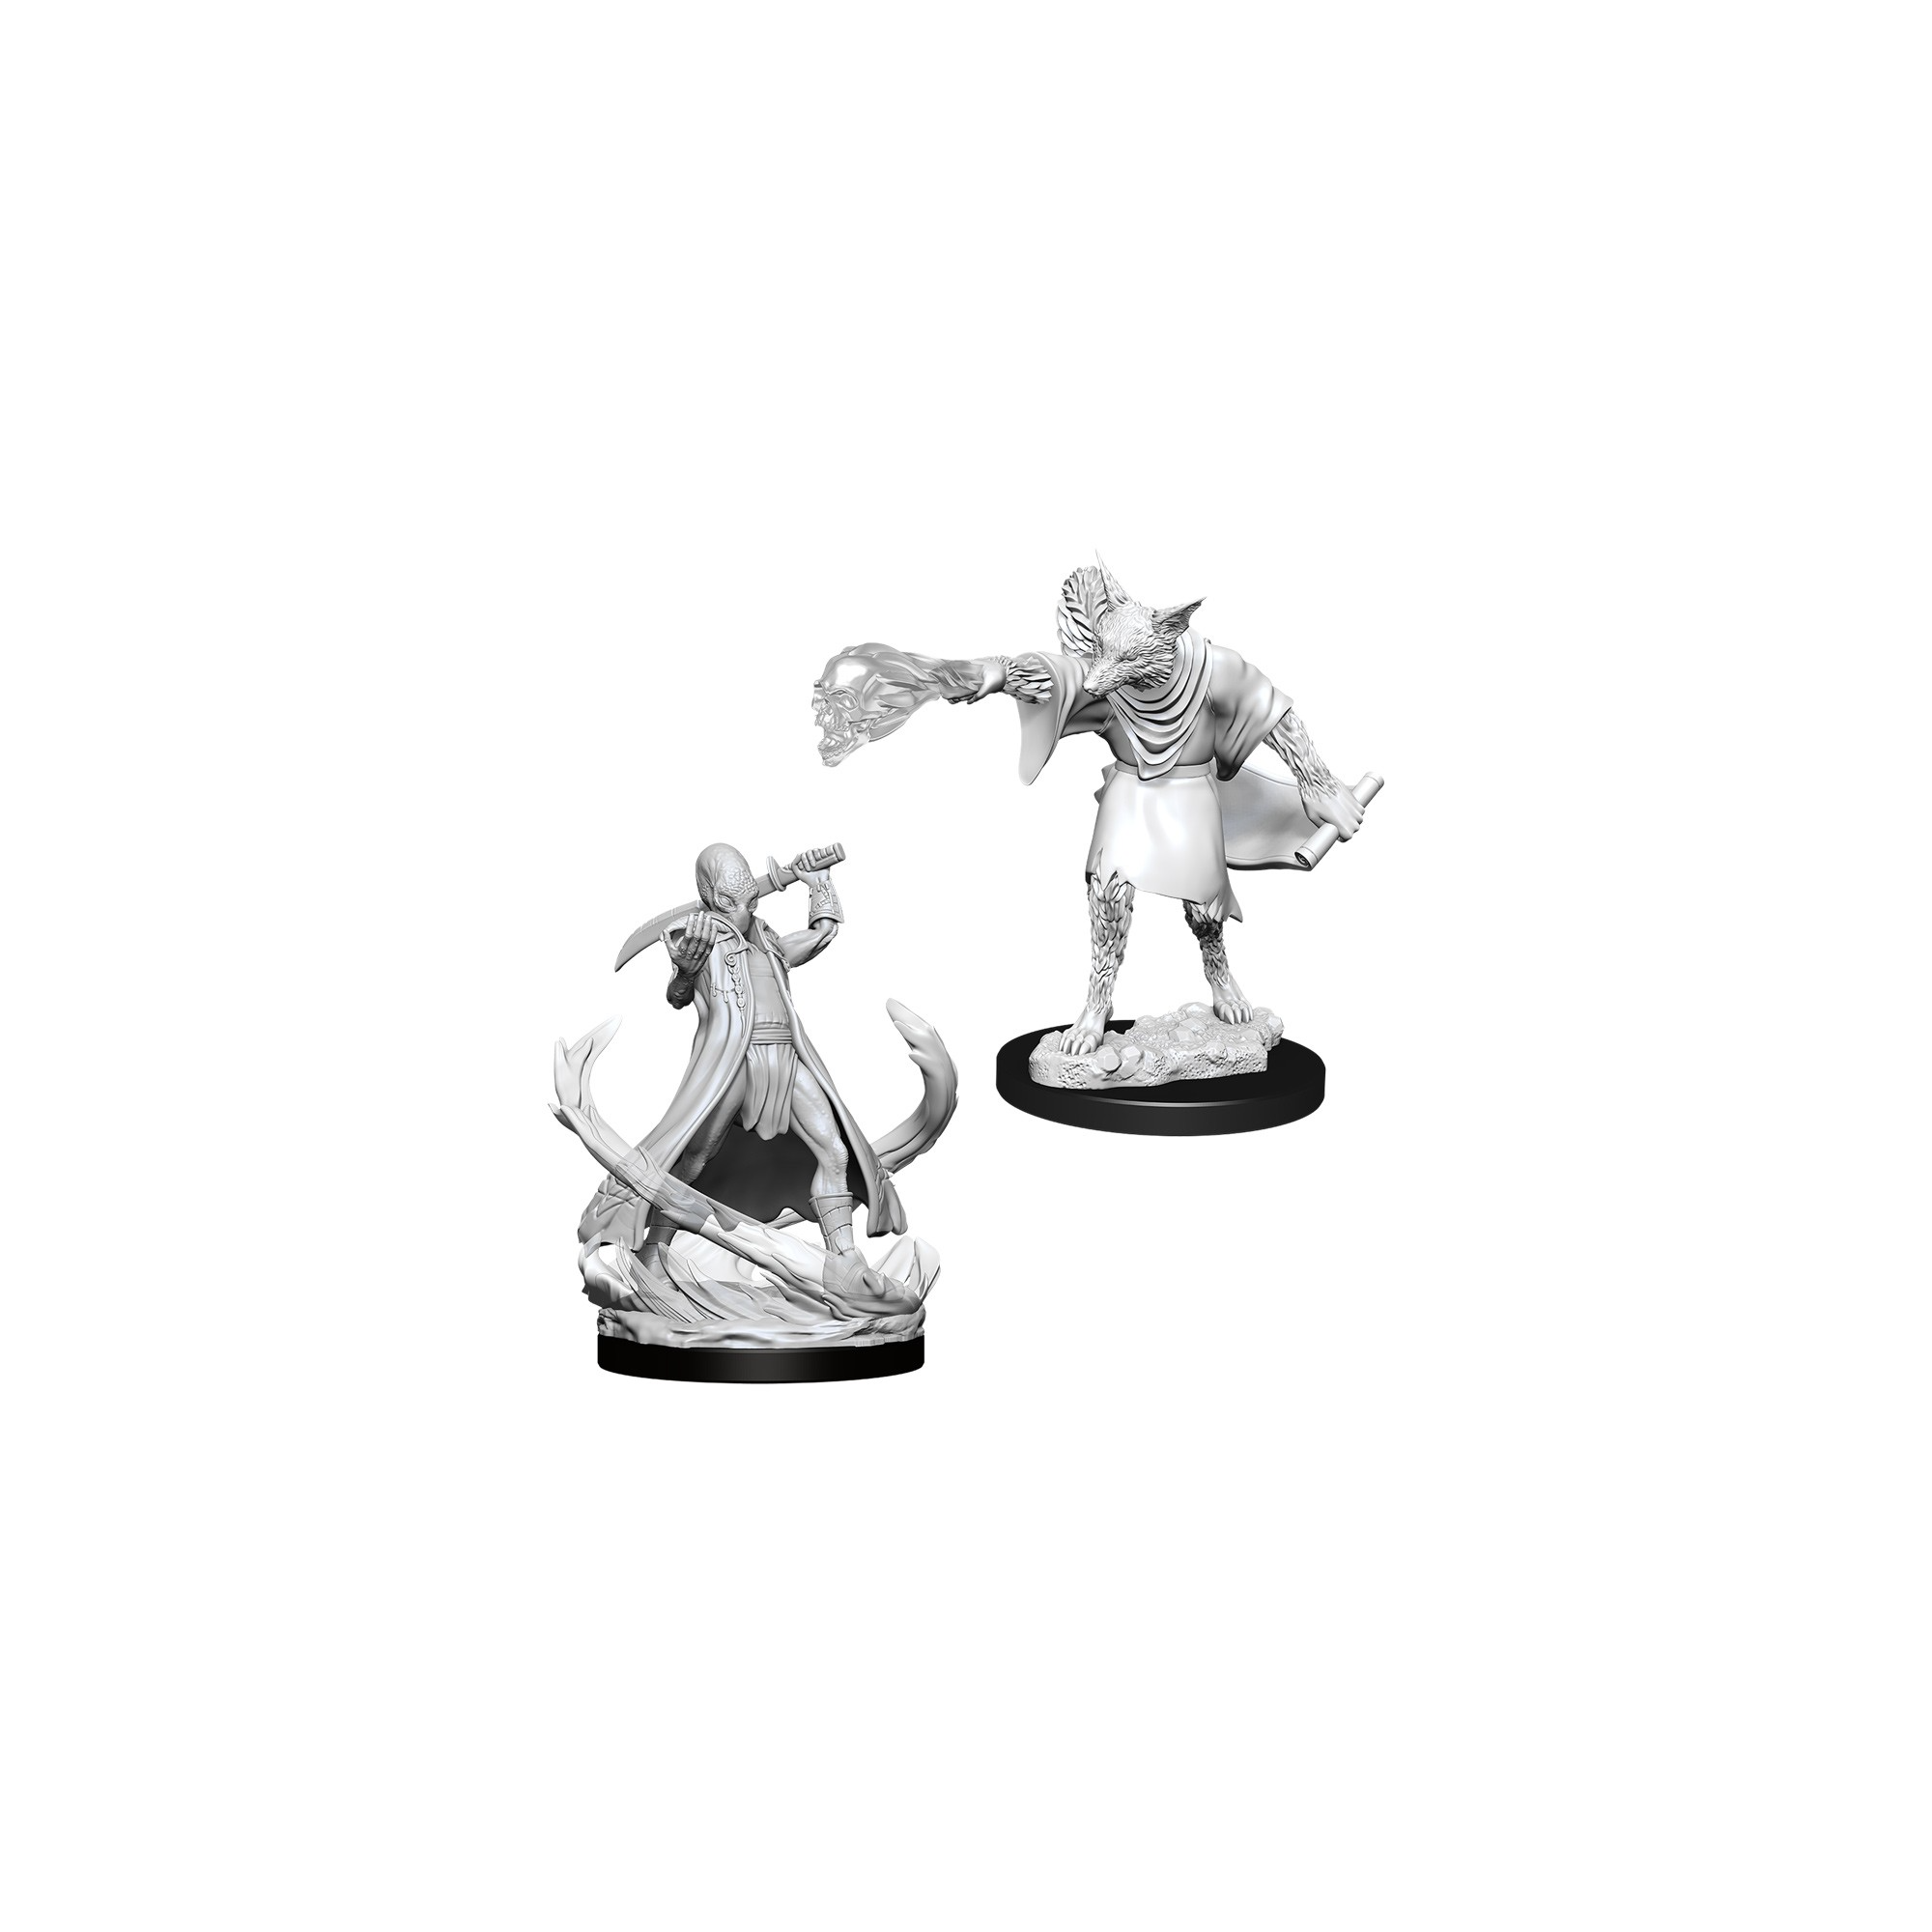 Wizkids Games D&D Dungeons & Dragons: DnD Unpainted Minis WV11 Arcanaloth and Ultraloth